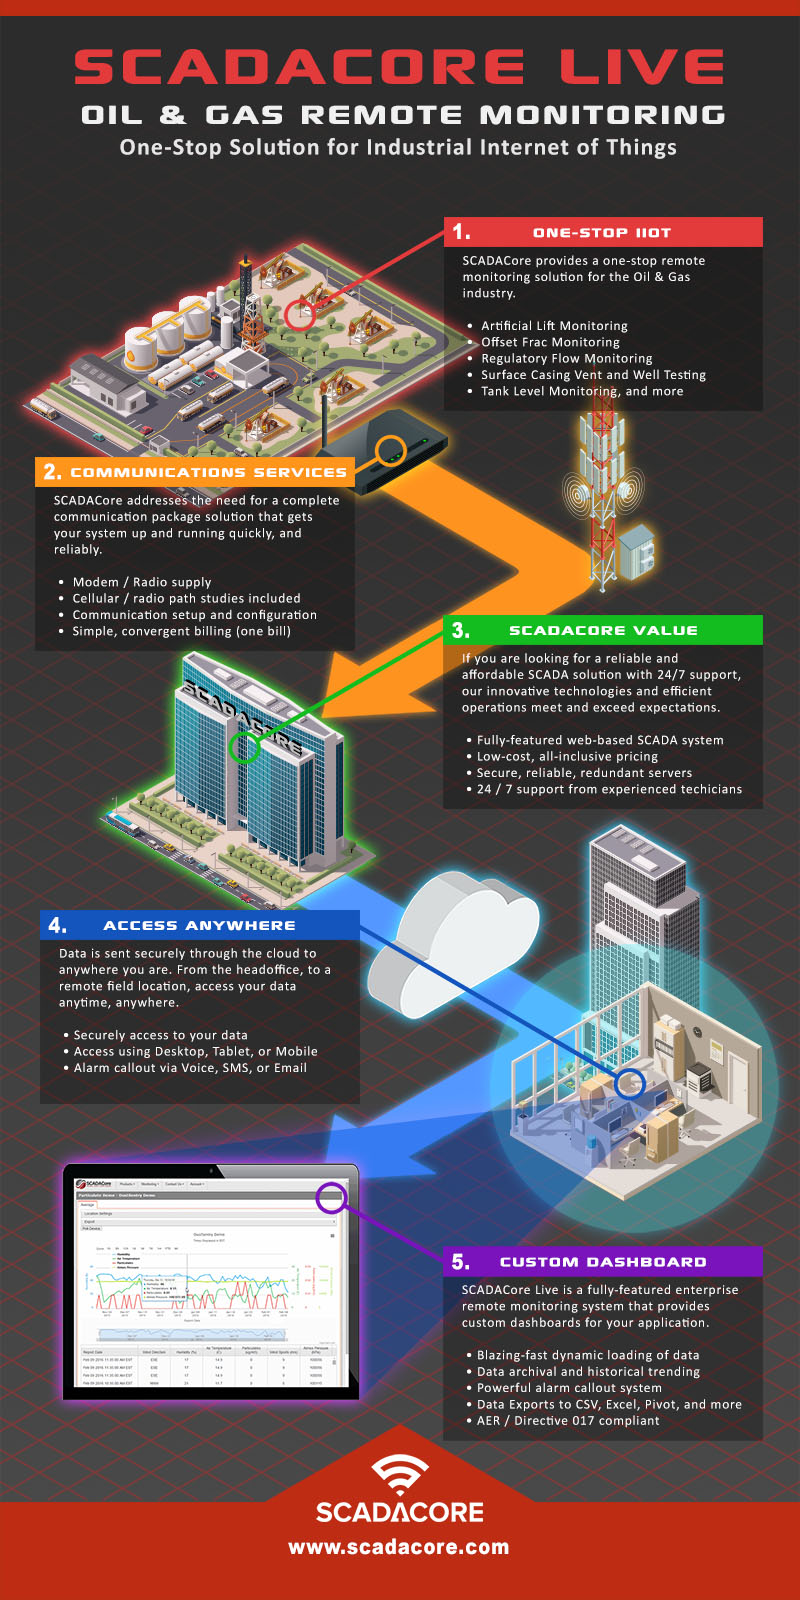 Oil and Gas Remote Monitoring Overview Infographic